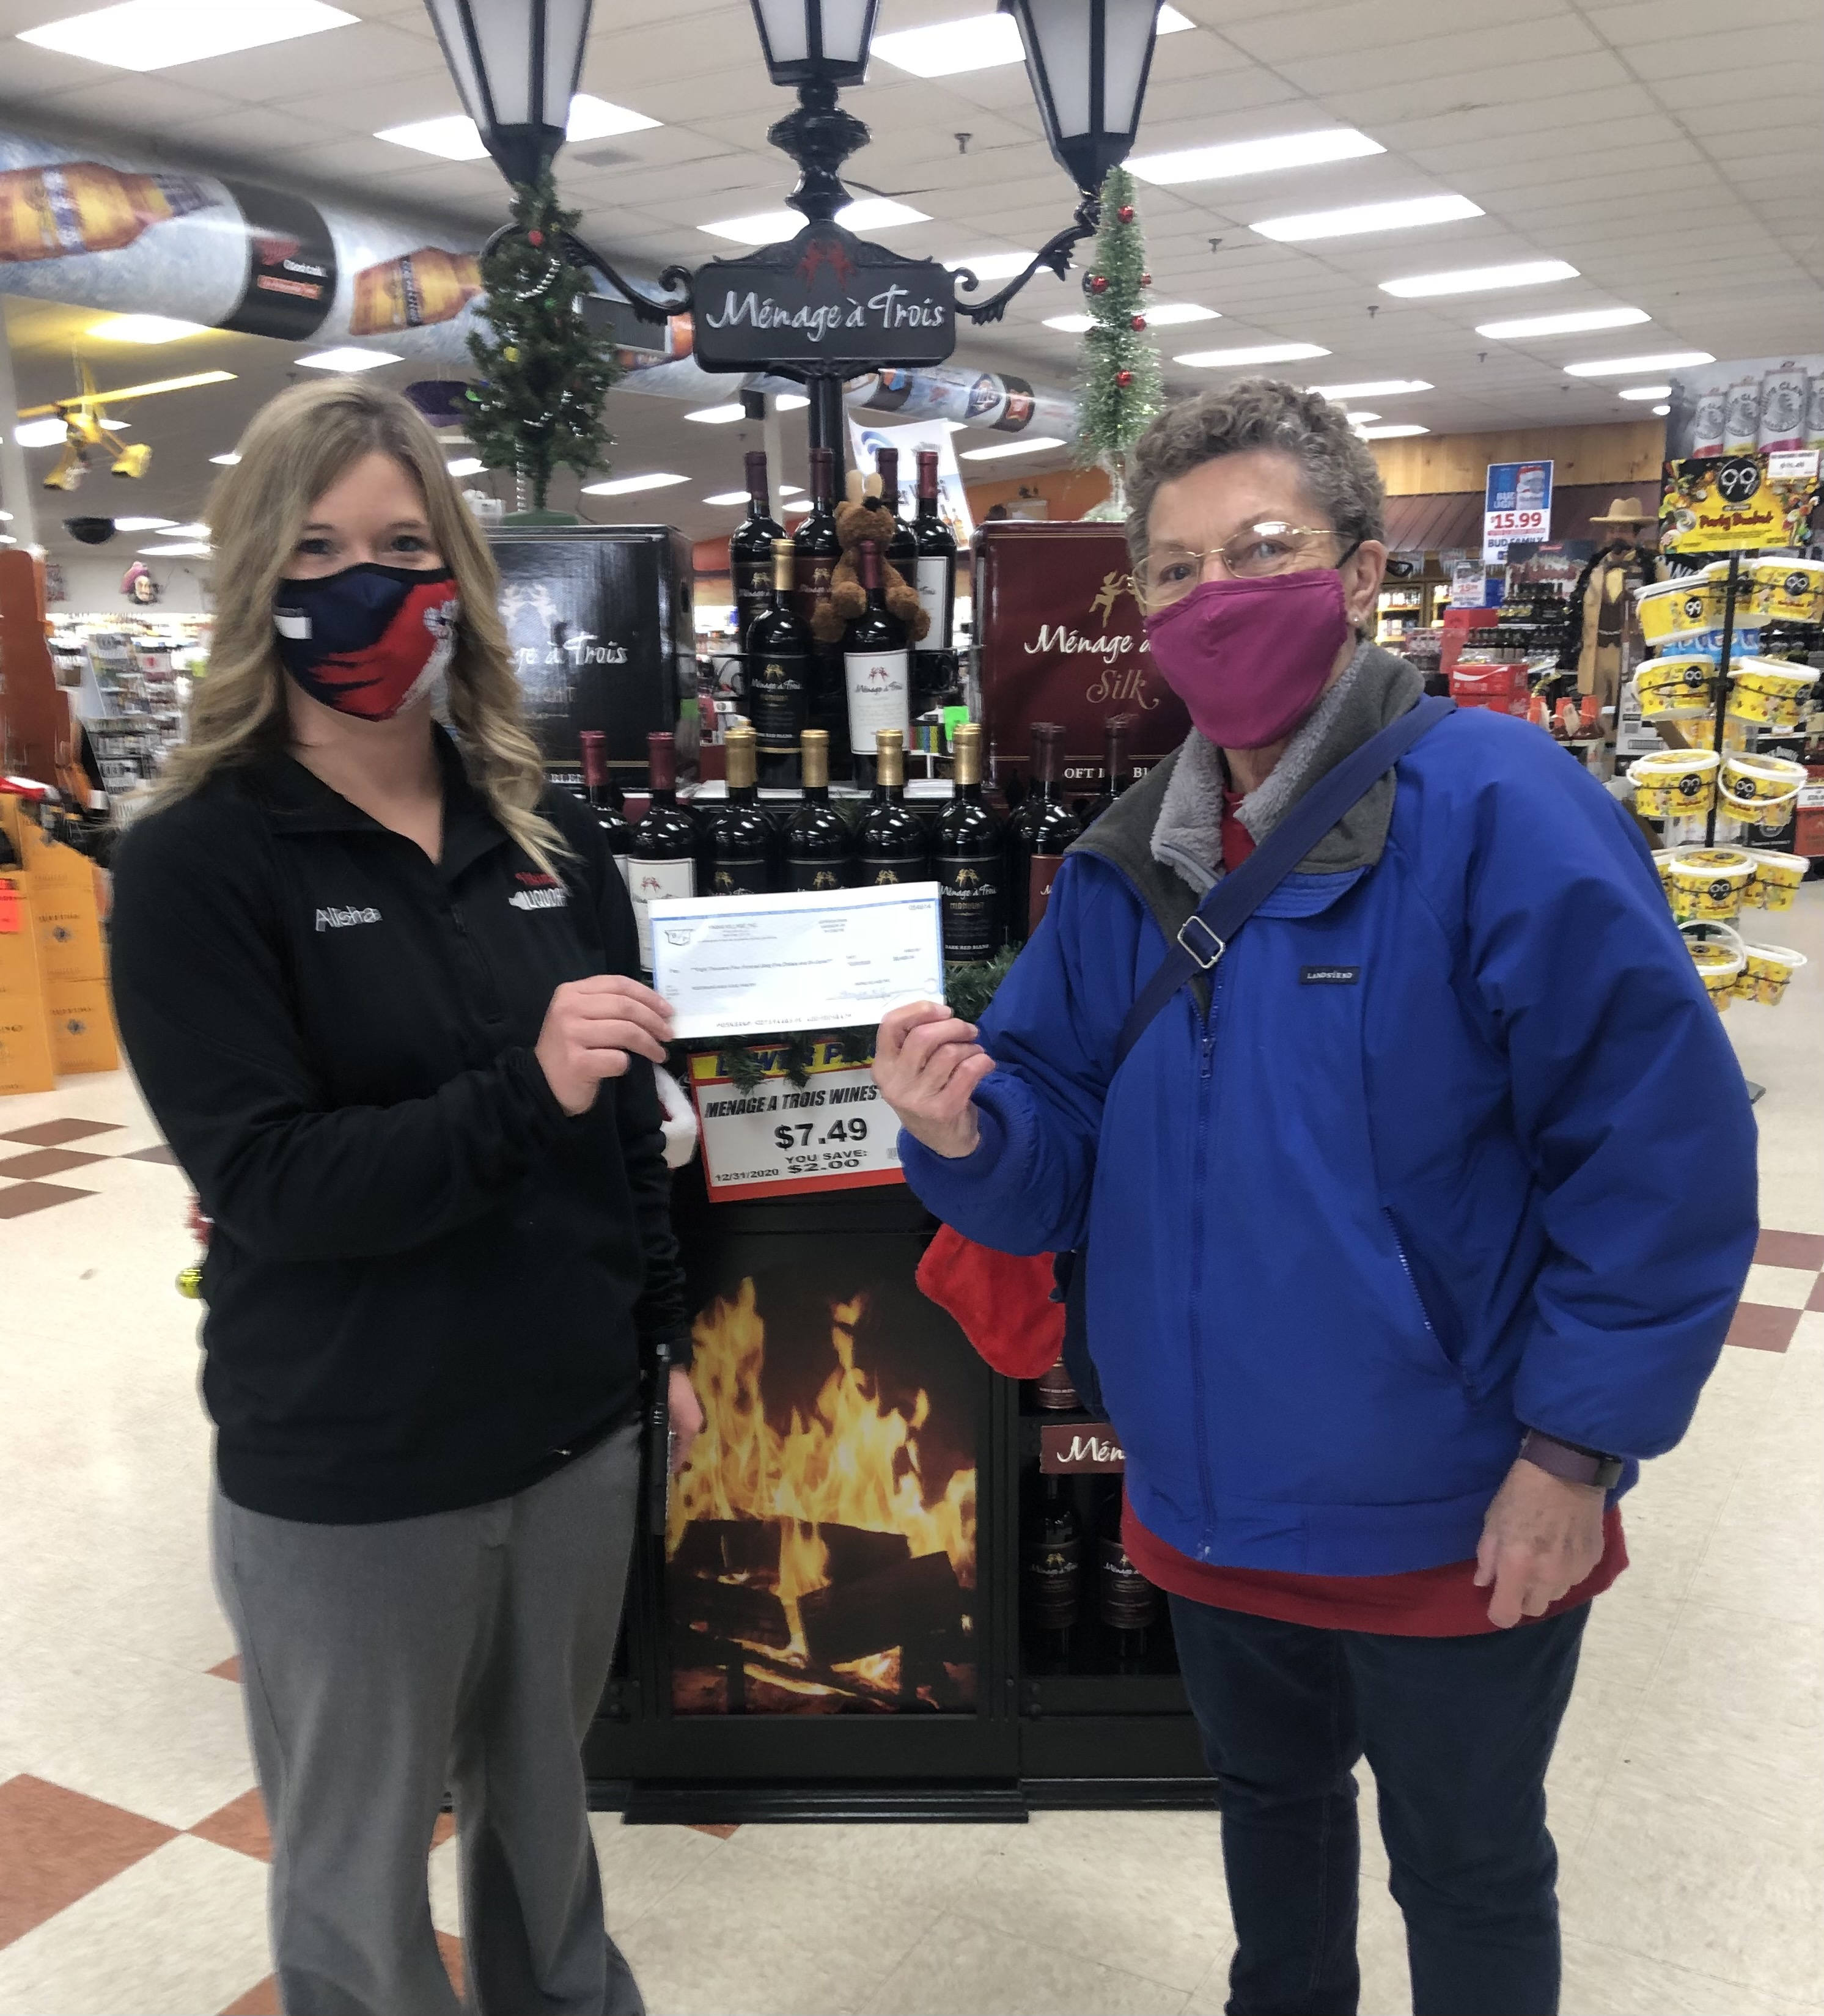 Viking Liquor Manager Alisha Johnson presents a $8,465 check to Reedsburg Area Food Pantry volunteer Ann Seamonson. The money was raised from Viking Liquor's online bourbon auction, which was held before the holidays in place of the usual annual Jingle Mingle. (Submitted photo)